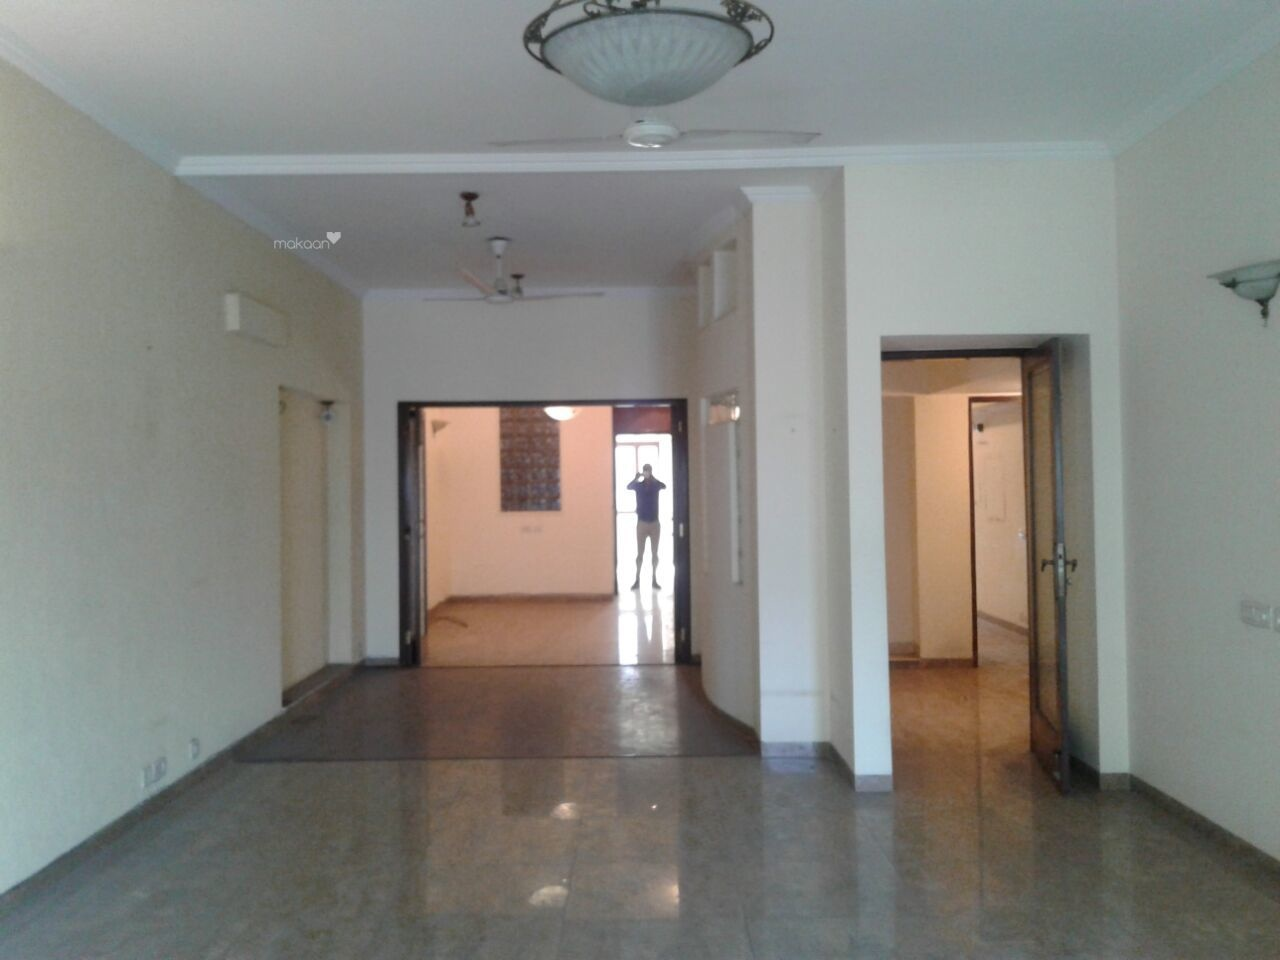 4500 sq ft 4BHK 4BHK+4T (4,500 sq ft) + Study Room Property By Goswami Realtors In Project, Greater kailash 1